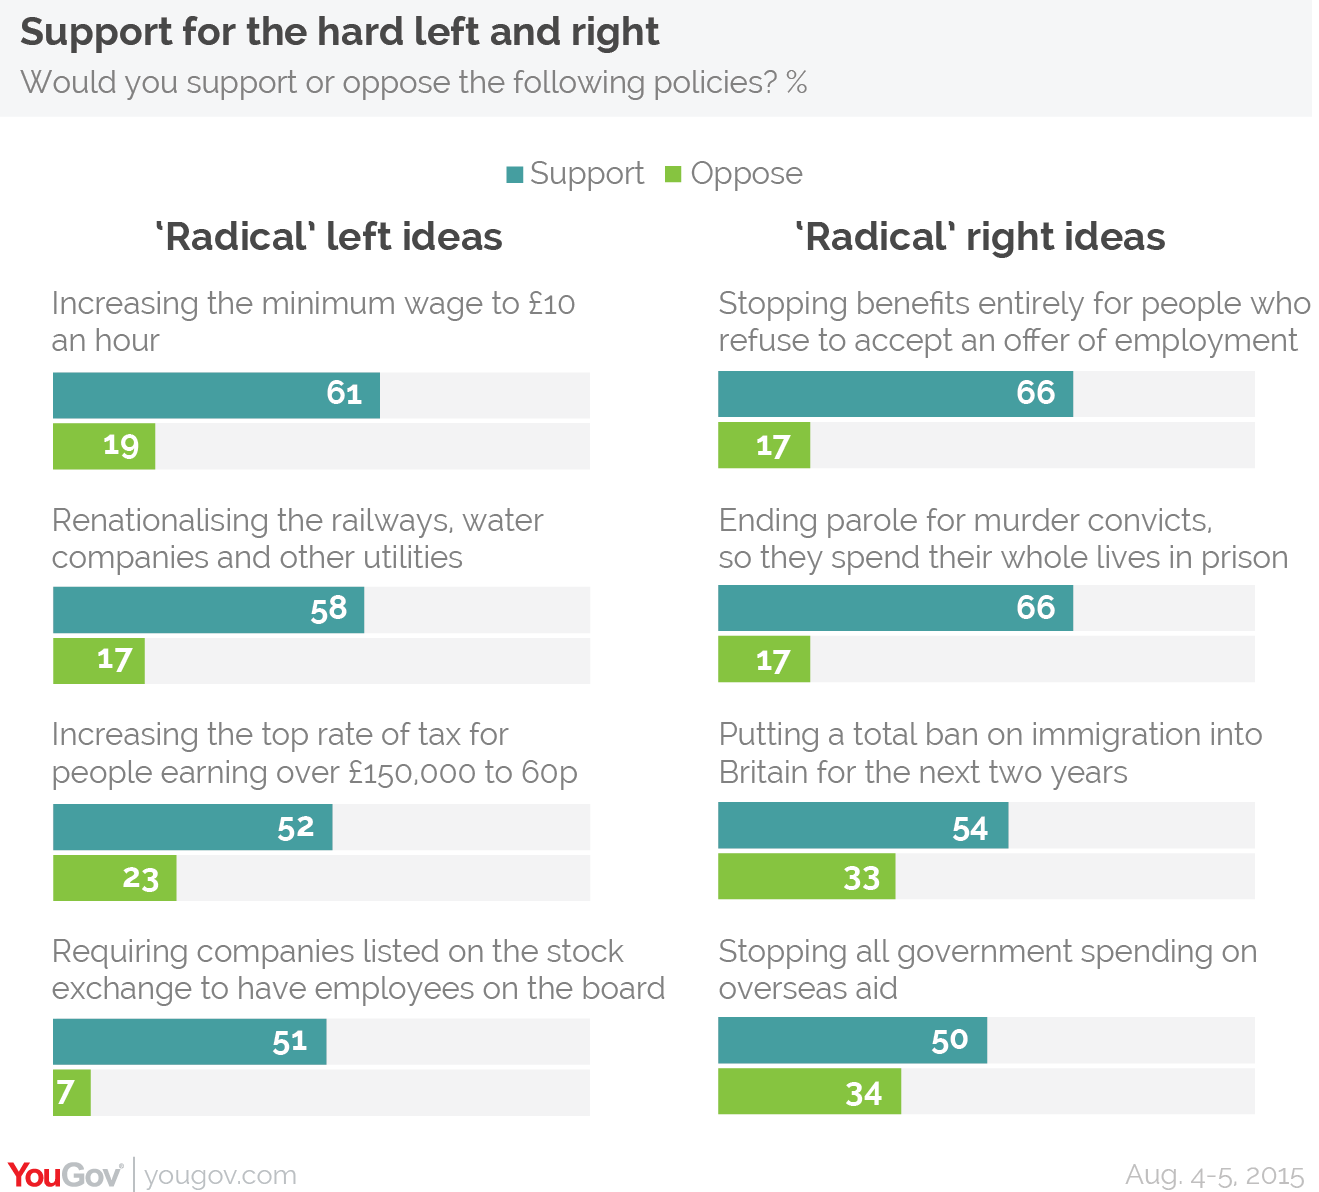 yougov majority support for rail nationalisation but also 66% of british people support stopping benefits entirely for people who refuse employment offers and 66% support ending parole for people convicted of